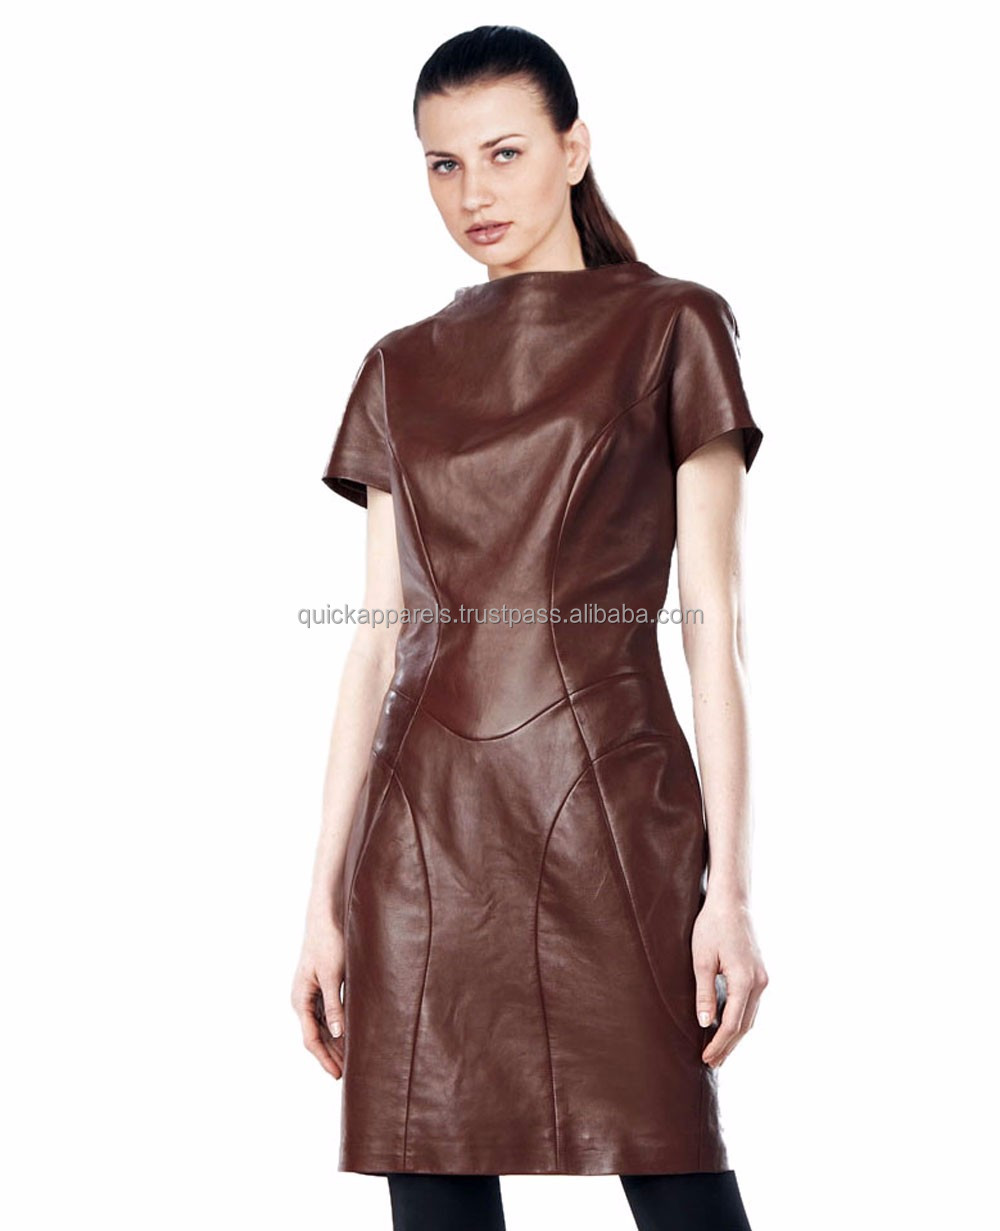 tan Fashion for women wear leather dress /leather hot wear/stylish leather women